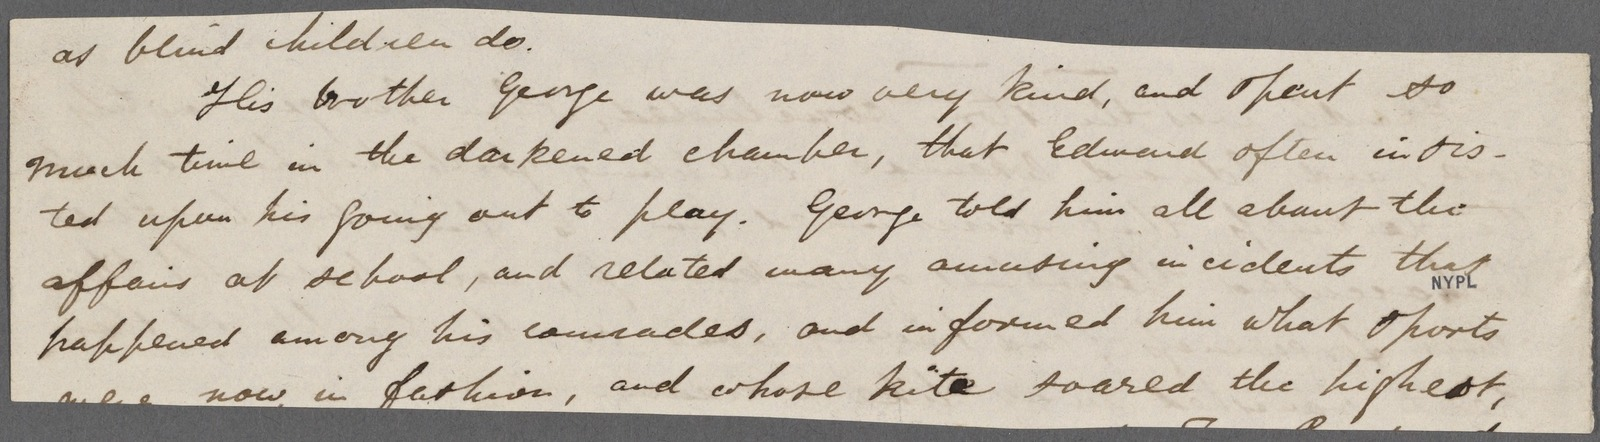 Biographical stories for children. Holograph fragment. Unsigned, undated.